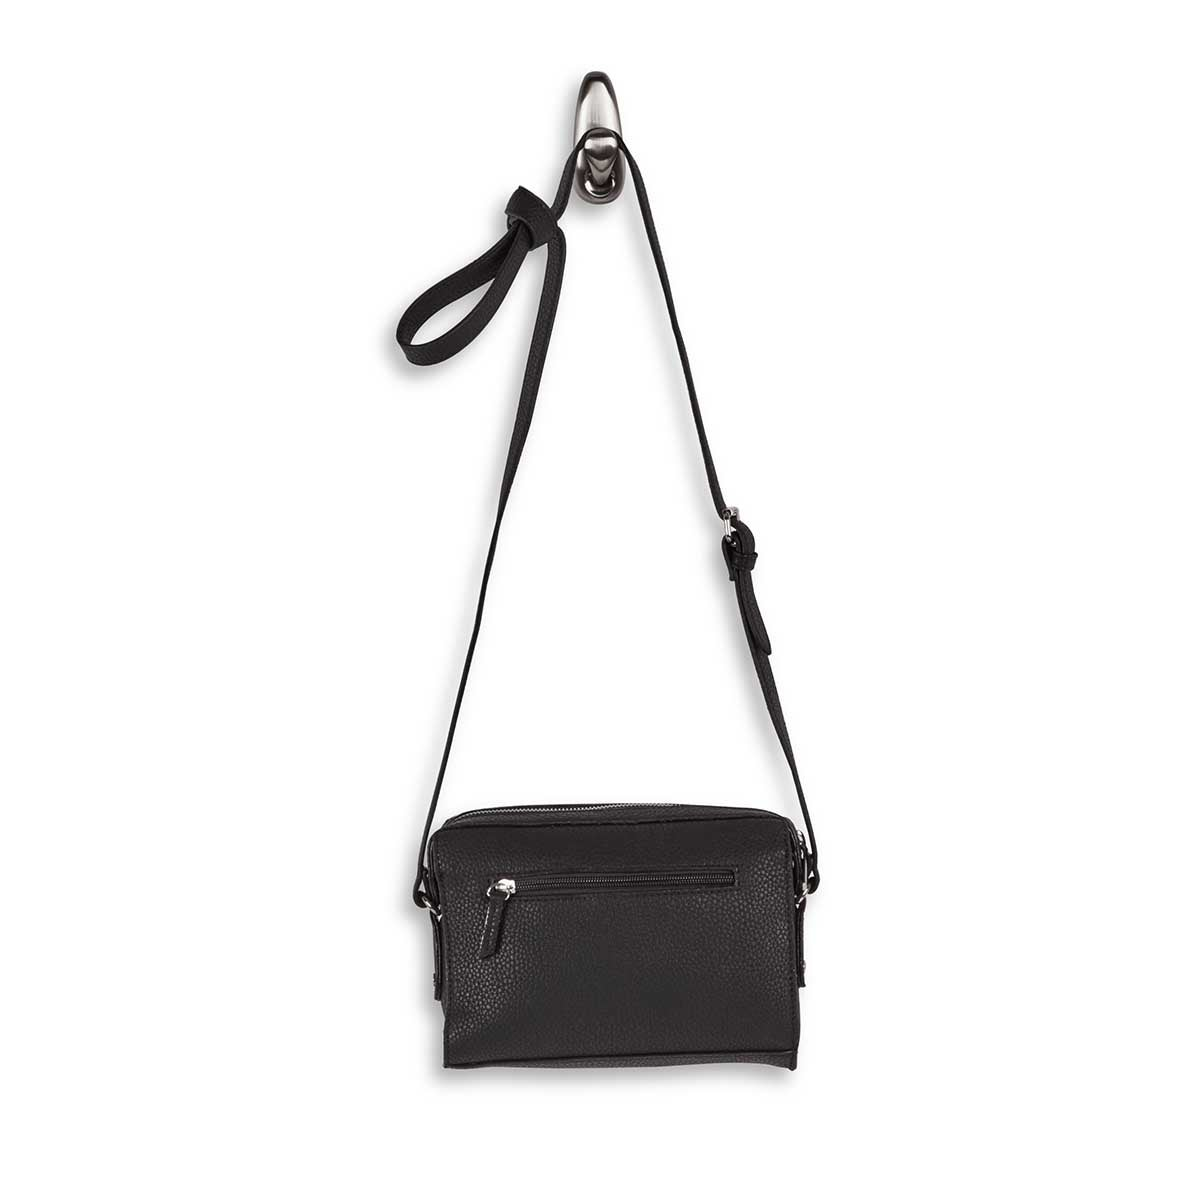 Lds Roots73 black rectangular crossbody